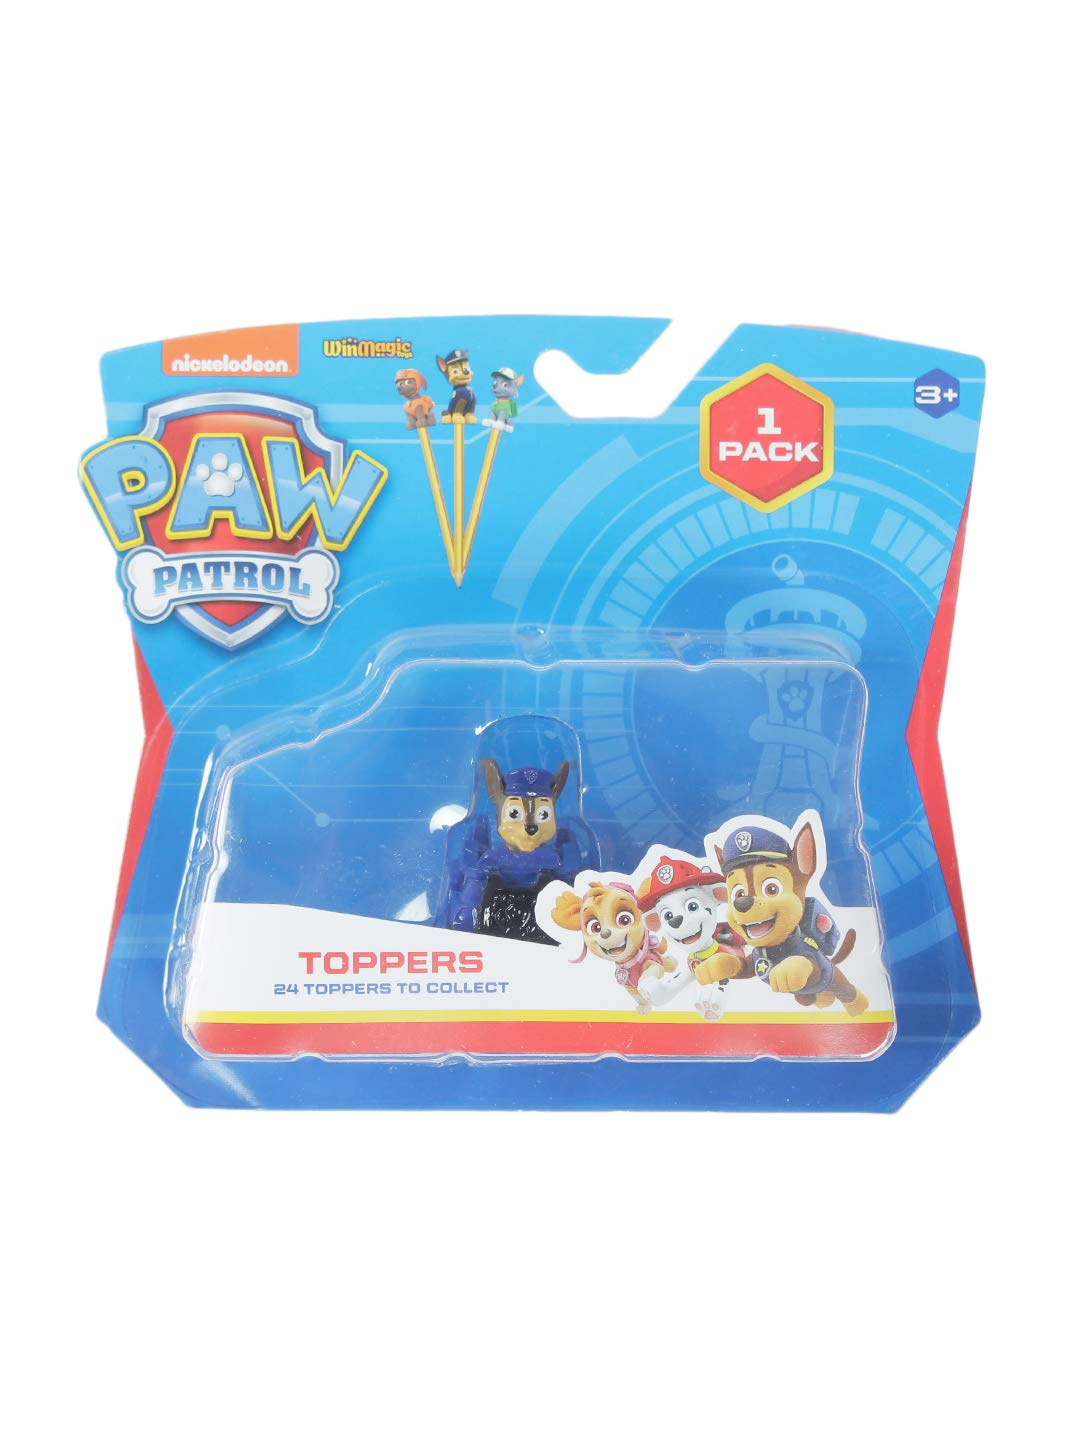 Paw Patrol Pencil Toppers 1 PC Blister (S1) - Chase with Police Vehicle for Kids 3+ & Above- Multicolor